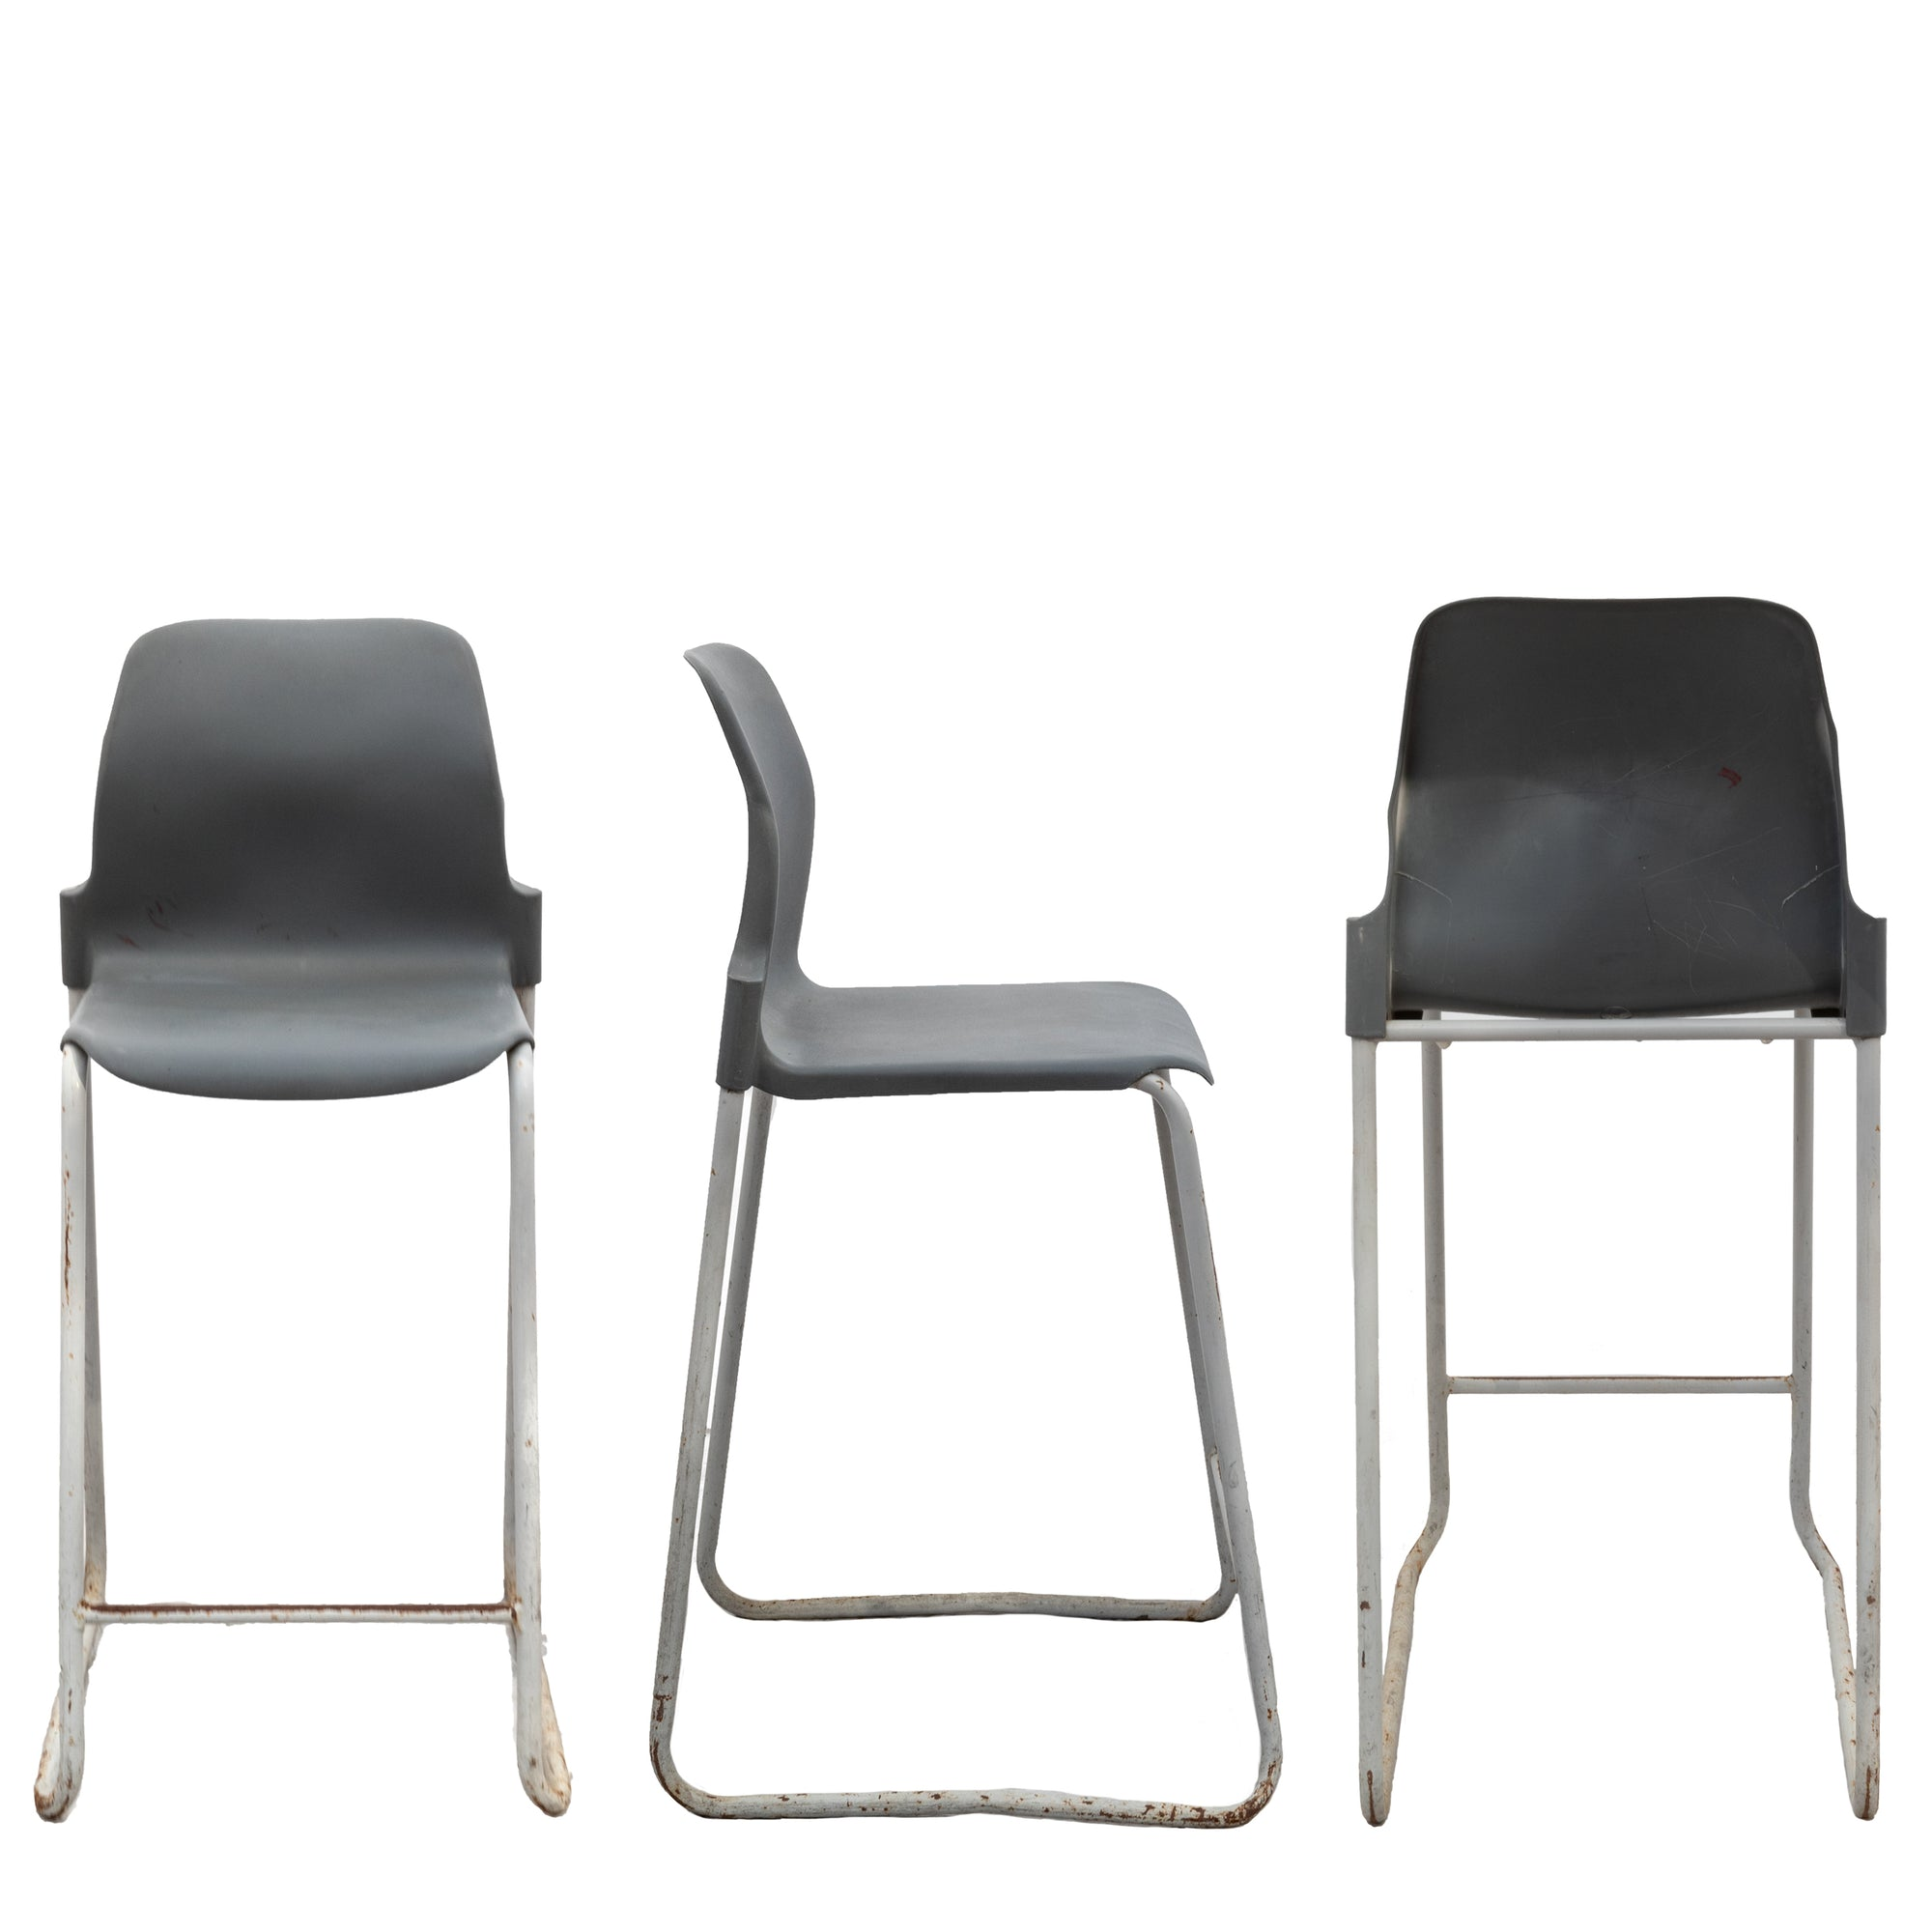 Set of 55 Mid-Century Style Stackable Stools | The Architectural Forum